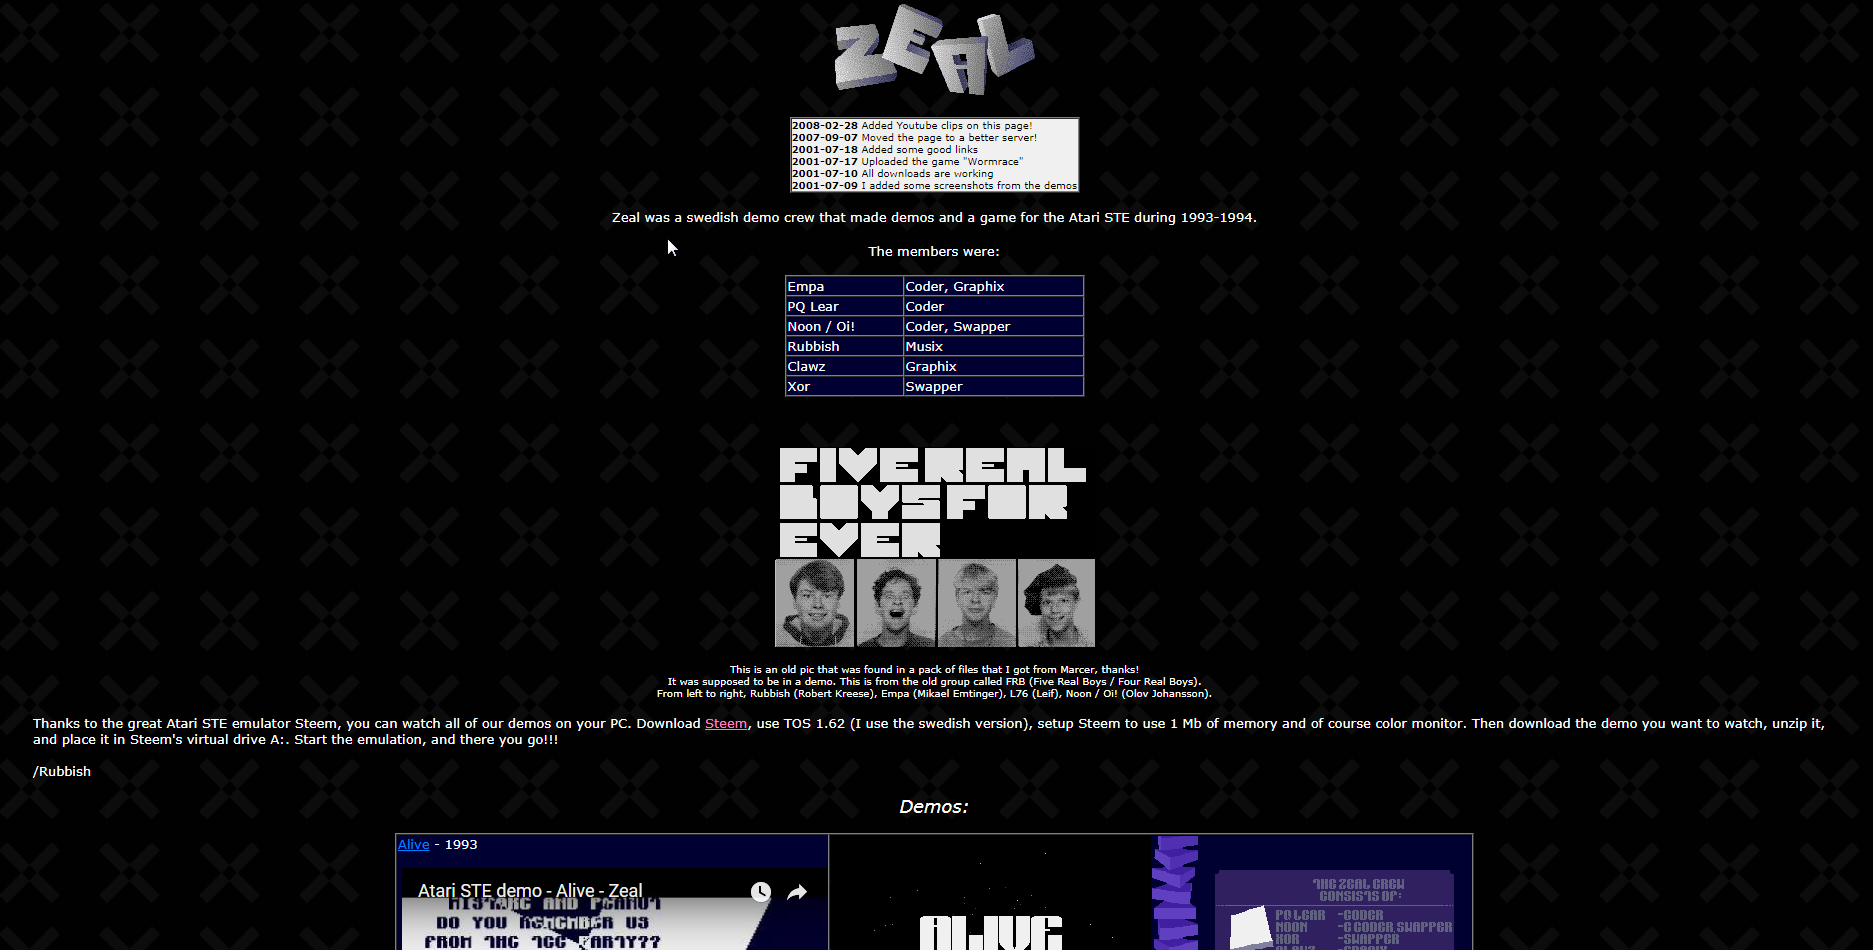 Screenshot of website Zeal